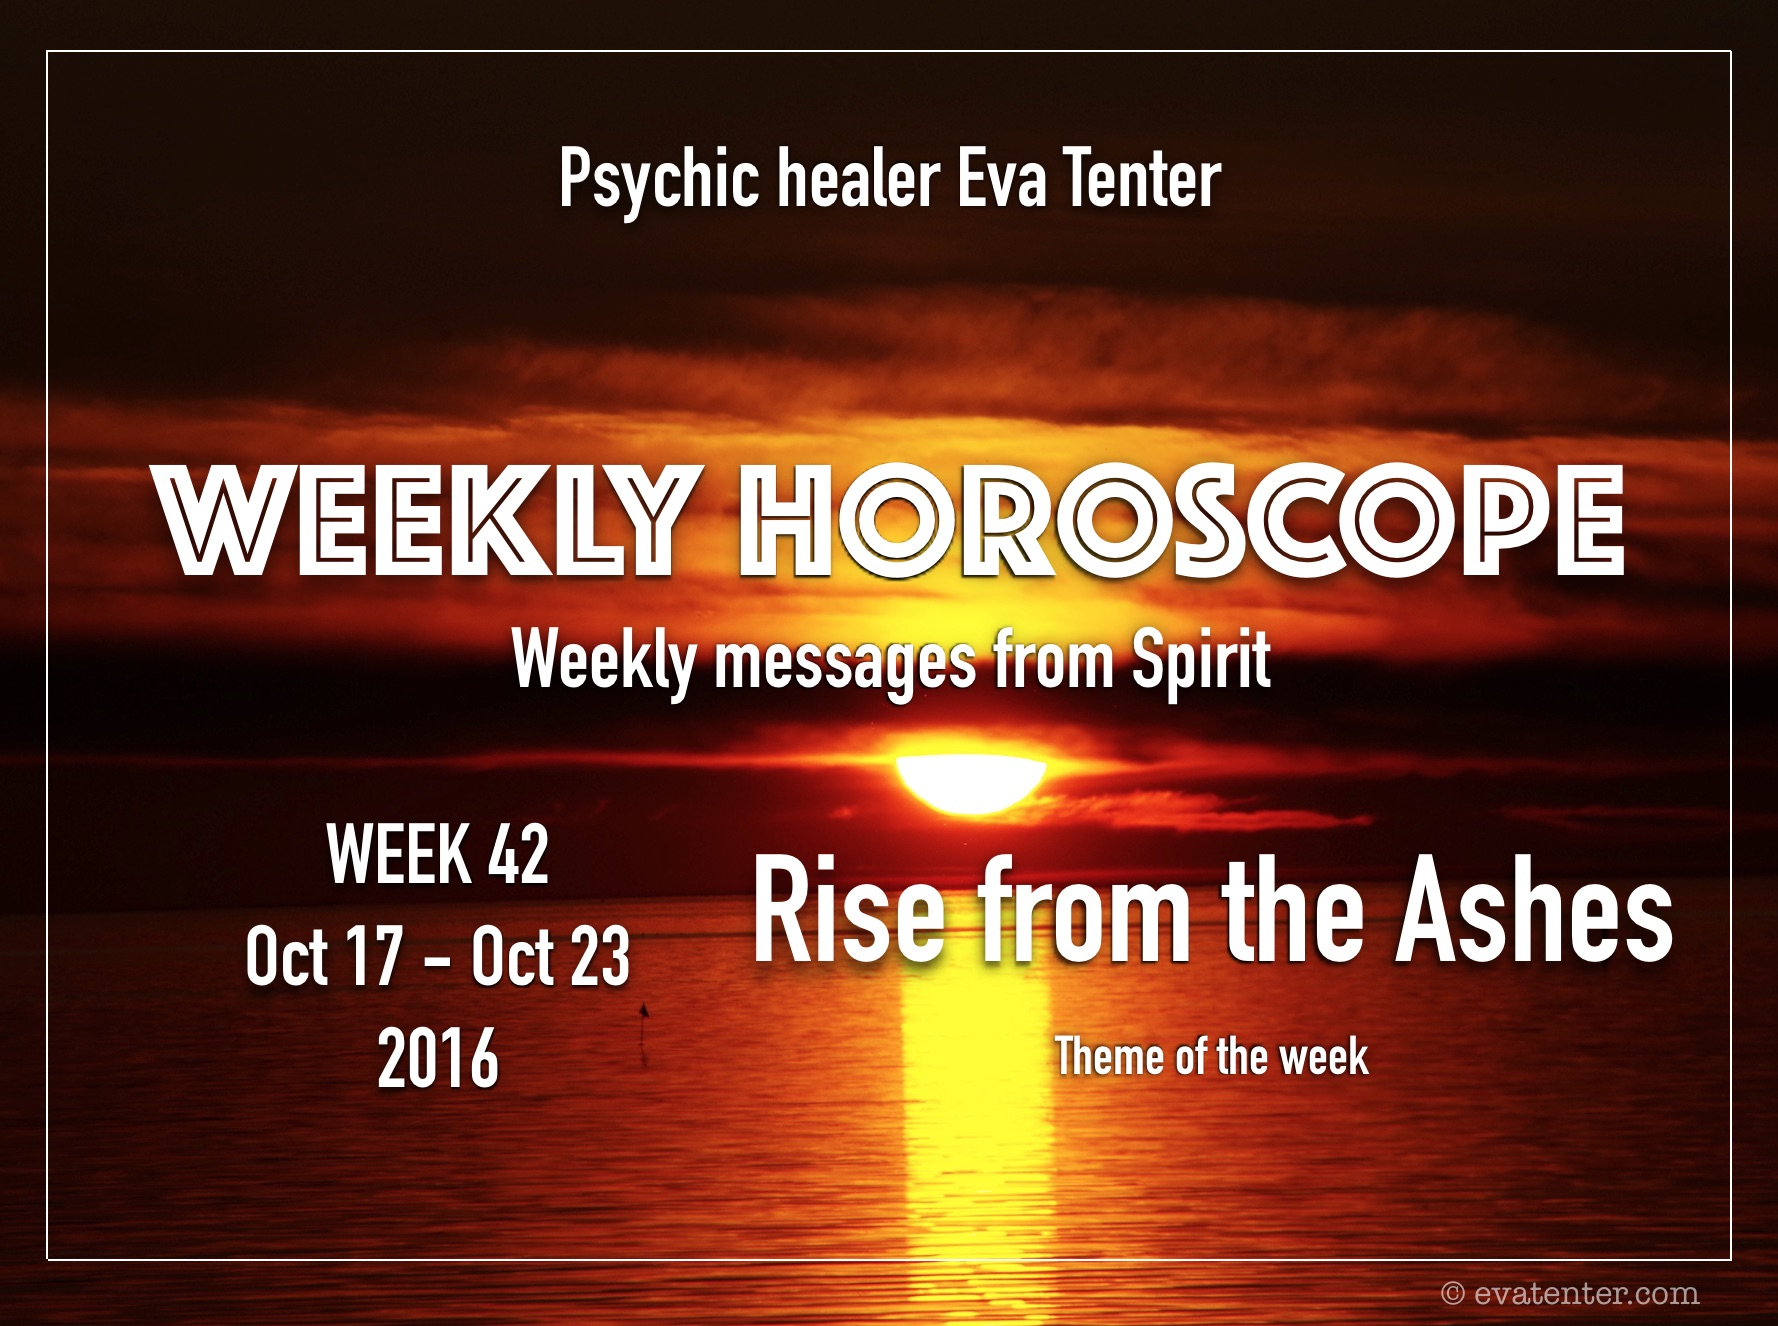 Weekly Horoscope Oct 17-Oct 23, 2016 #horoscopes